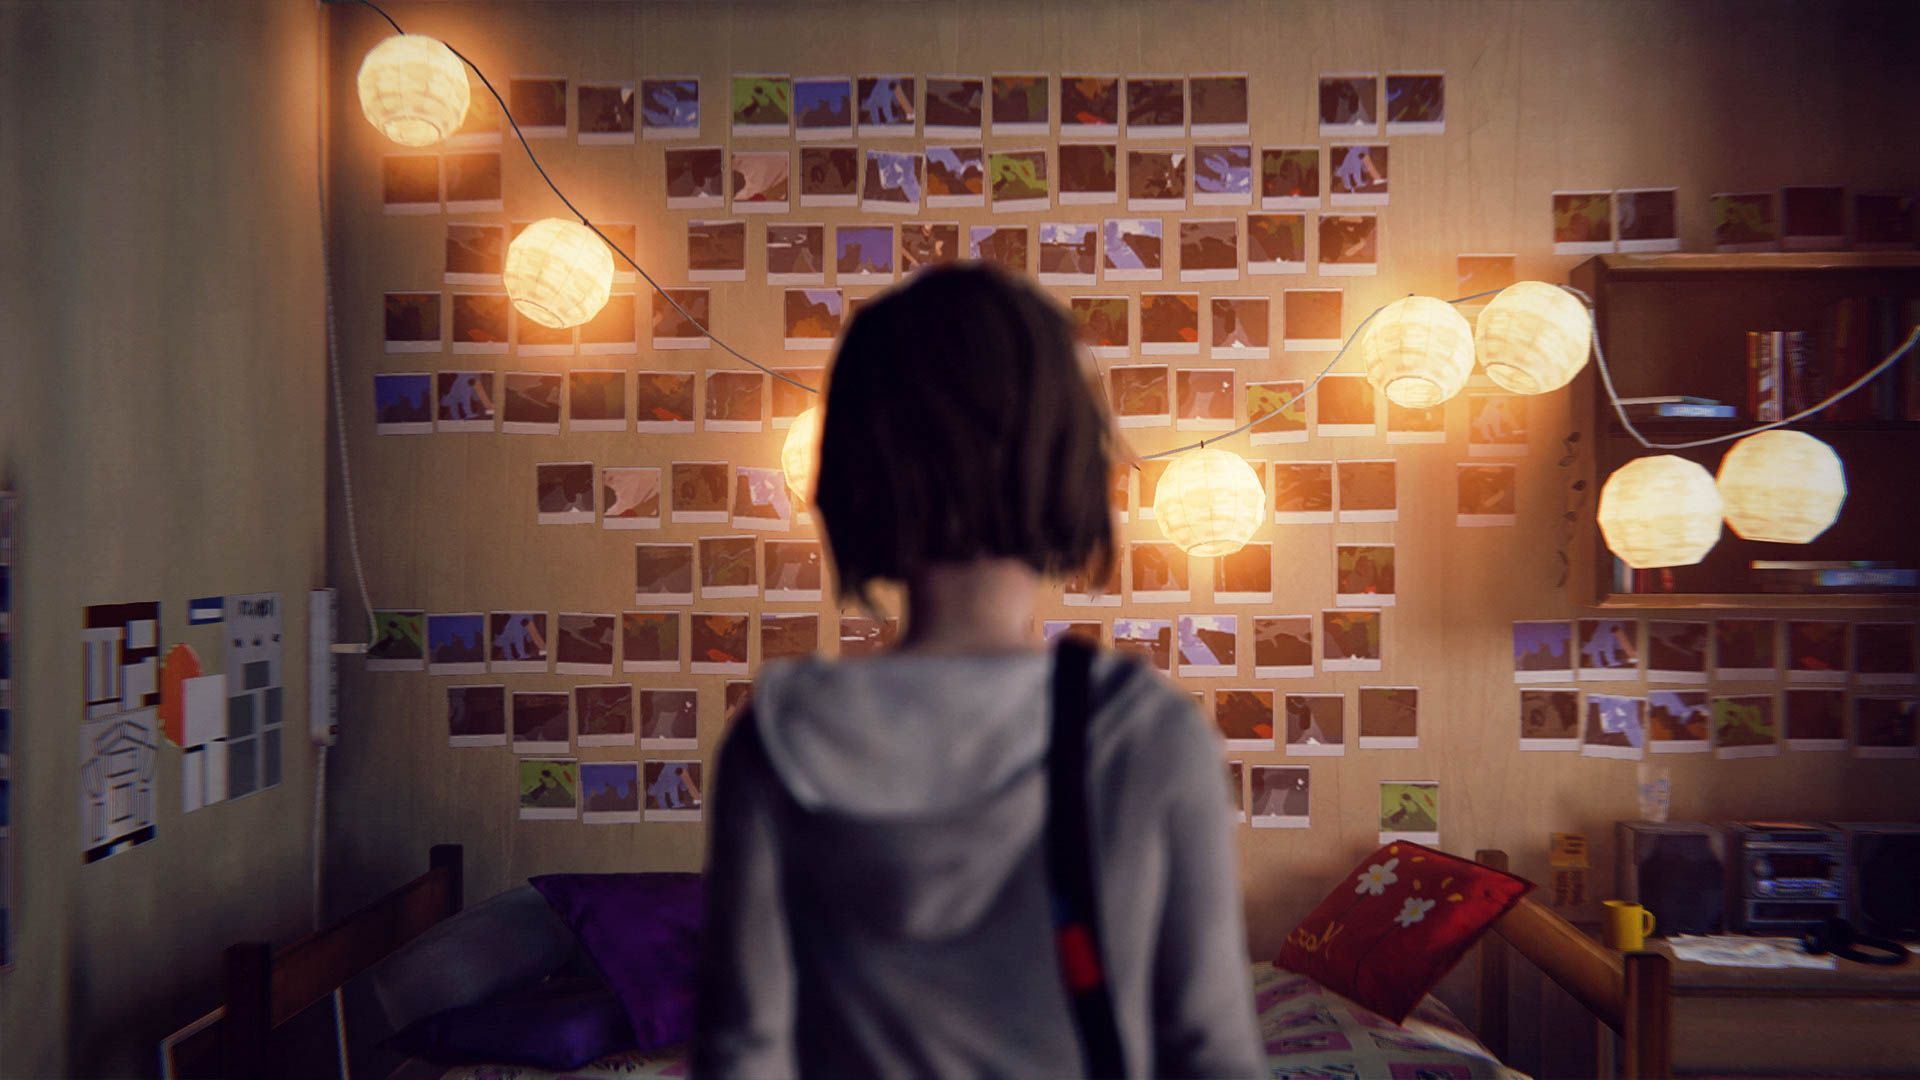 Life Is Strange Wallpapers Full Hd Jllsly Life Is Strange Wallpaper Life Is Strange Background Images Hd